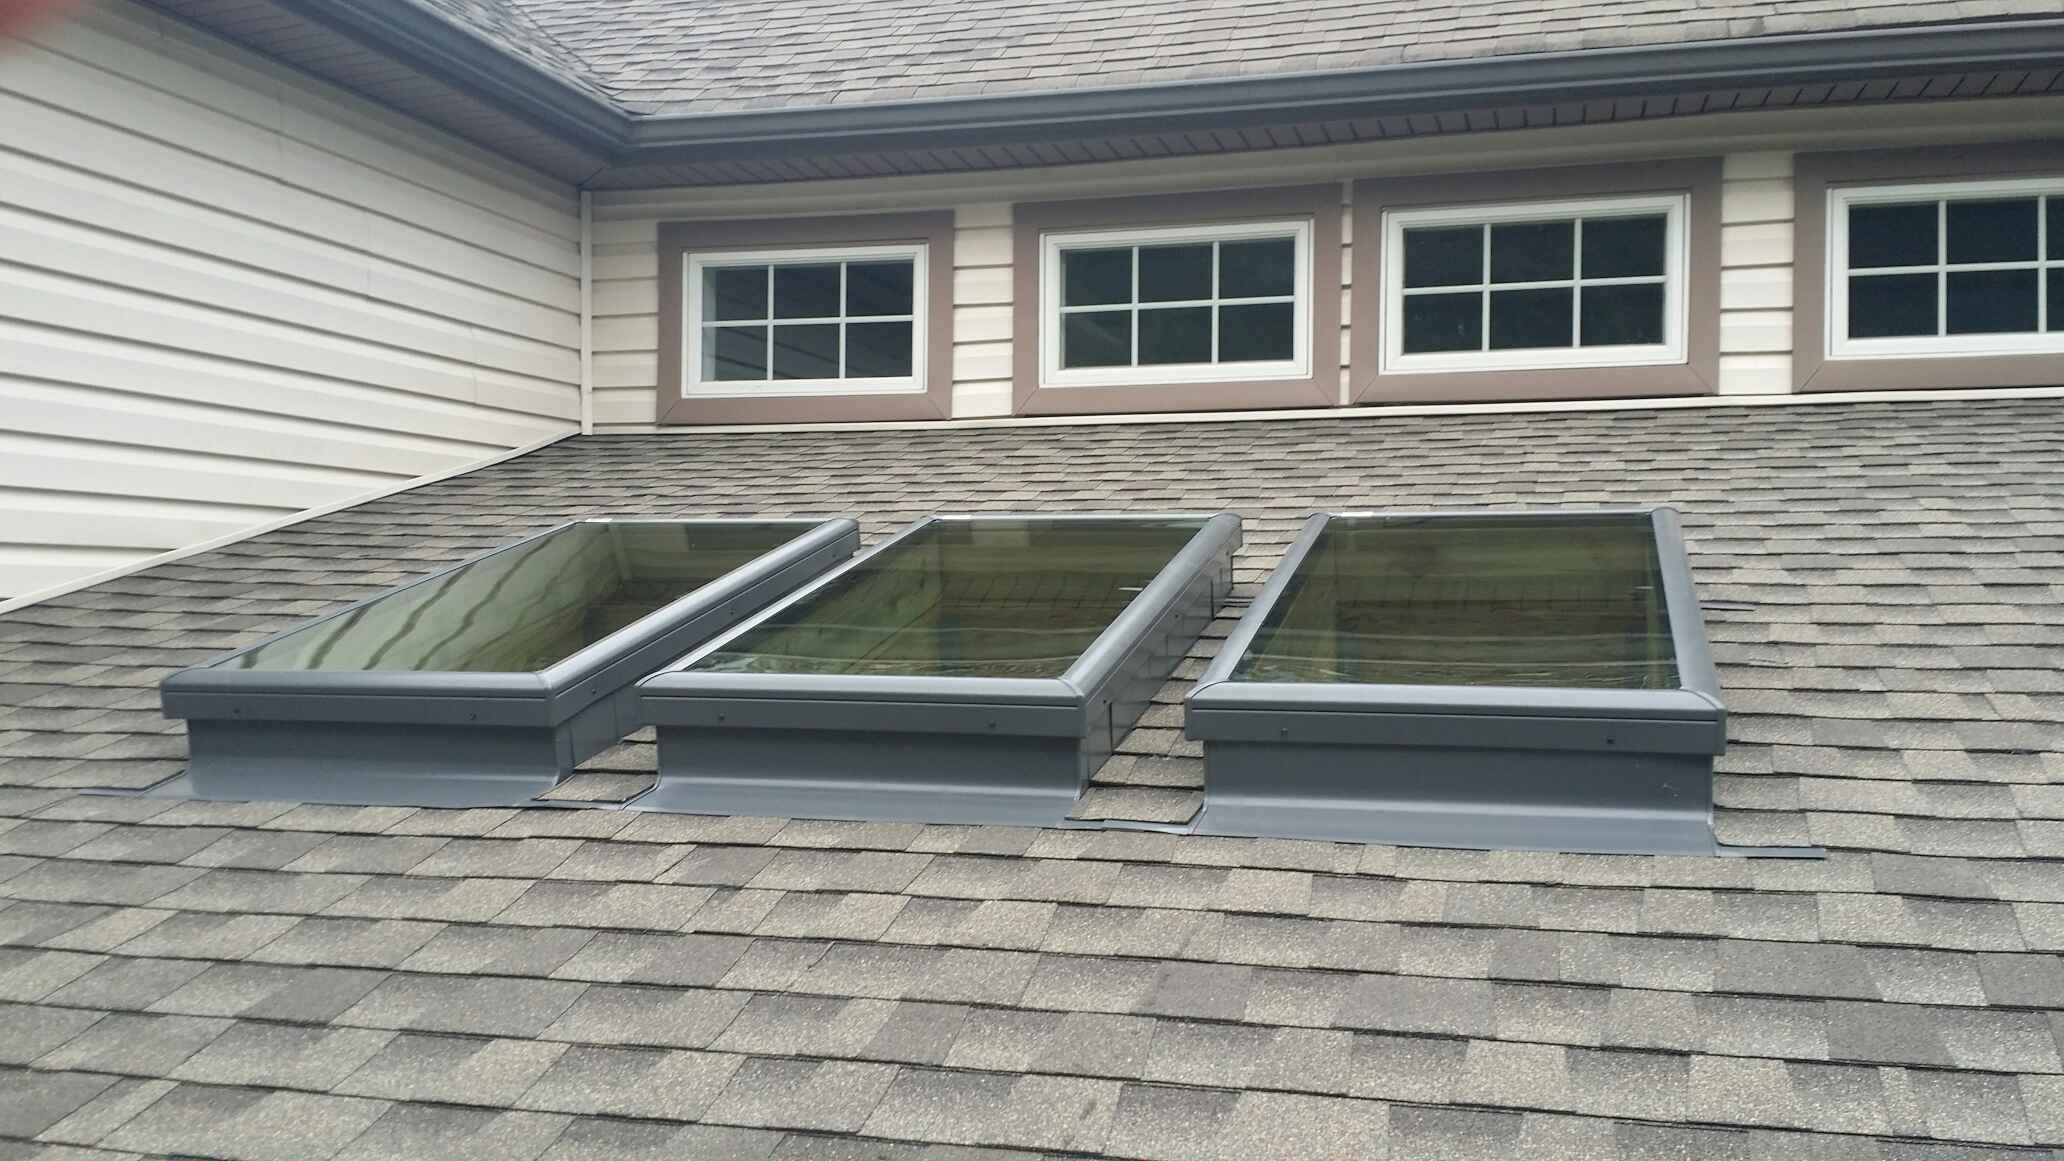 Gaf Timberline Hd Roofing System With Pewter Gray Shingles